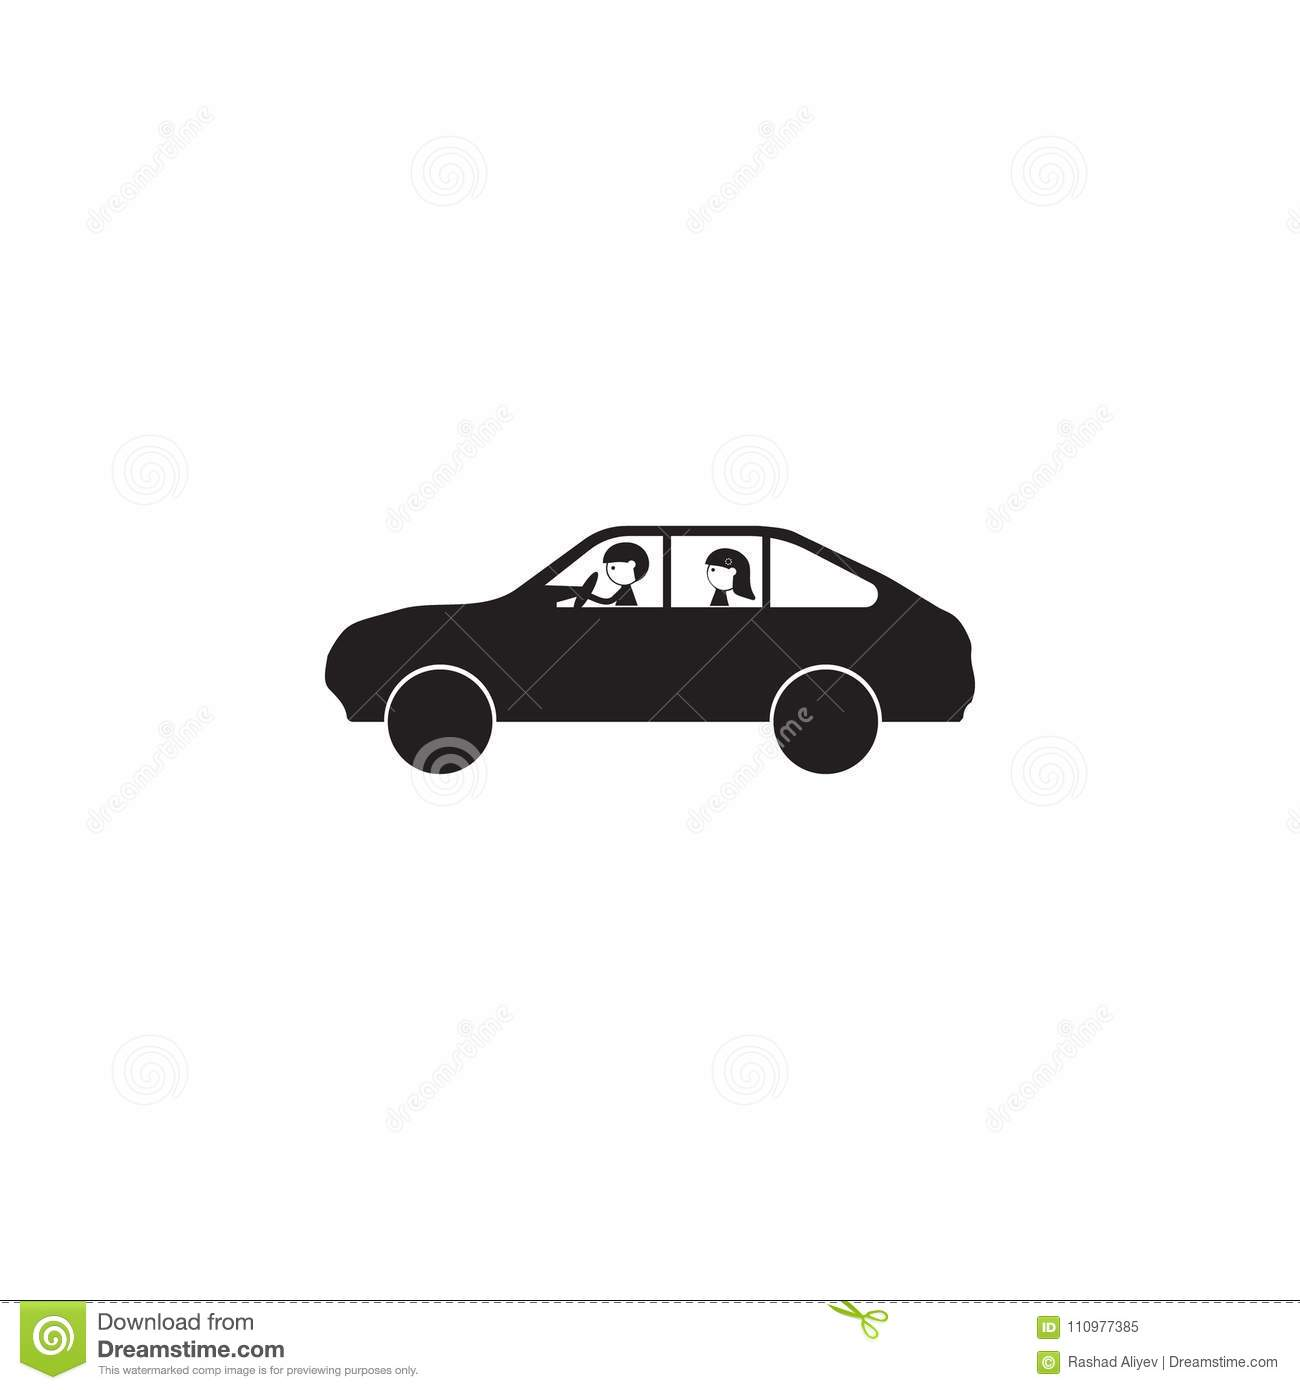 Married Couple In The Car Icon. Illustration Of Family